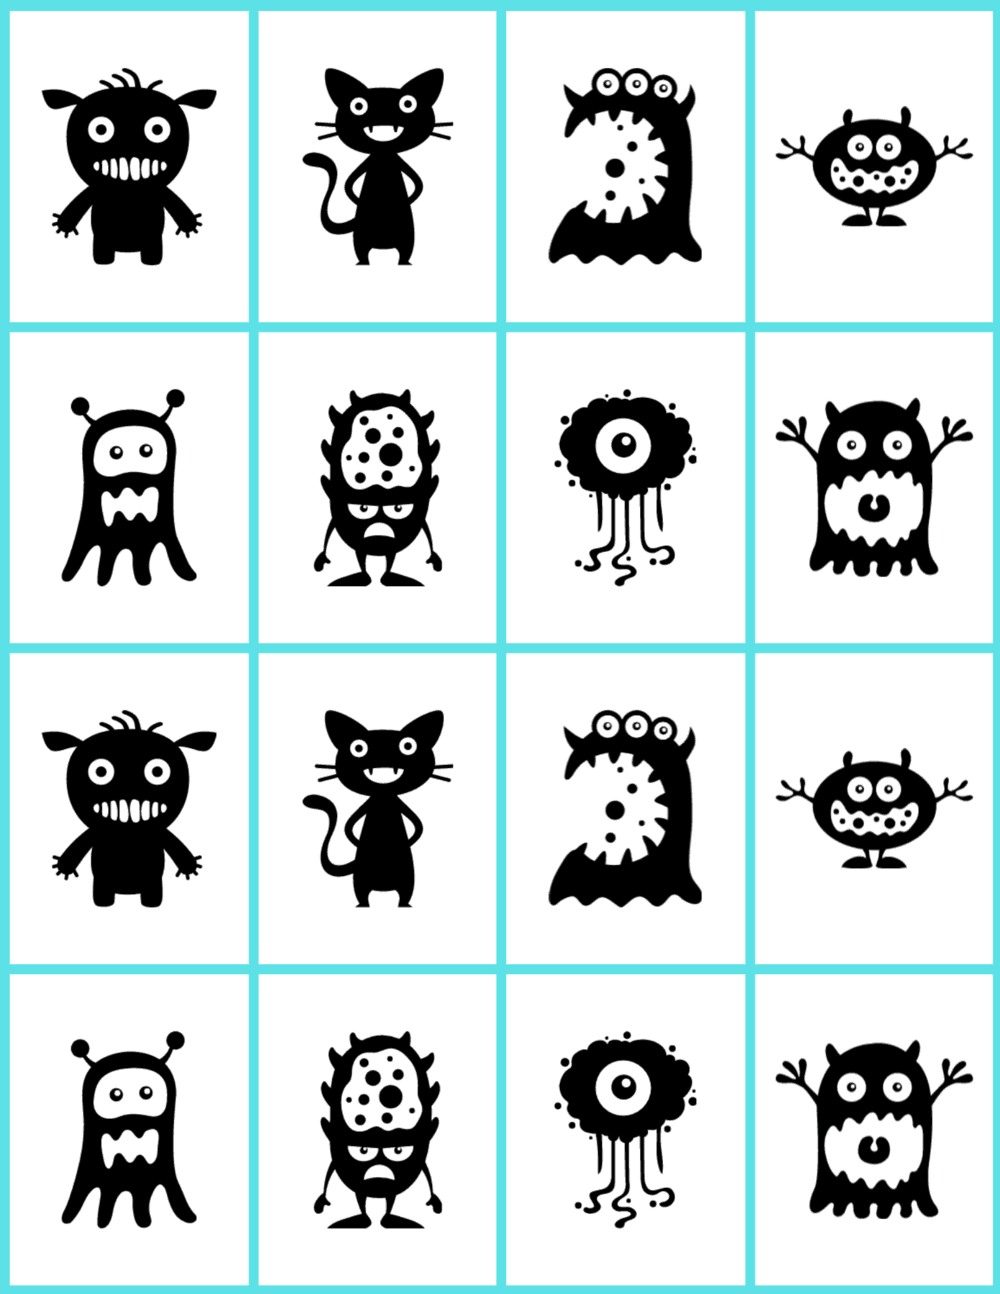 black and white silly monsters on cards for a memory matching game.